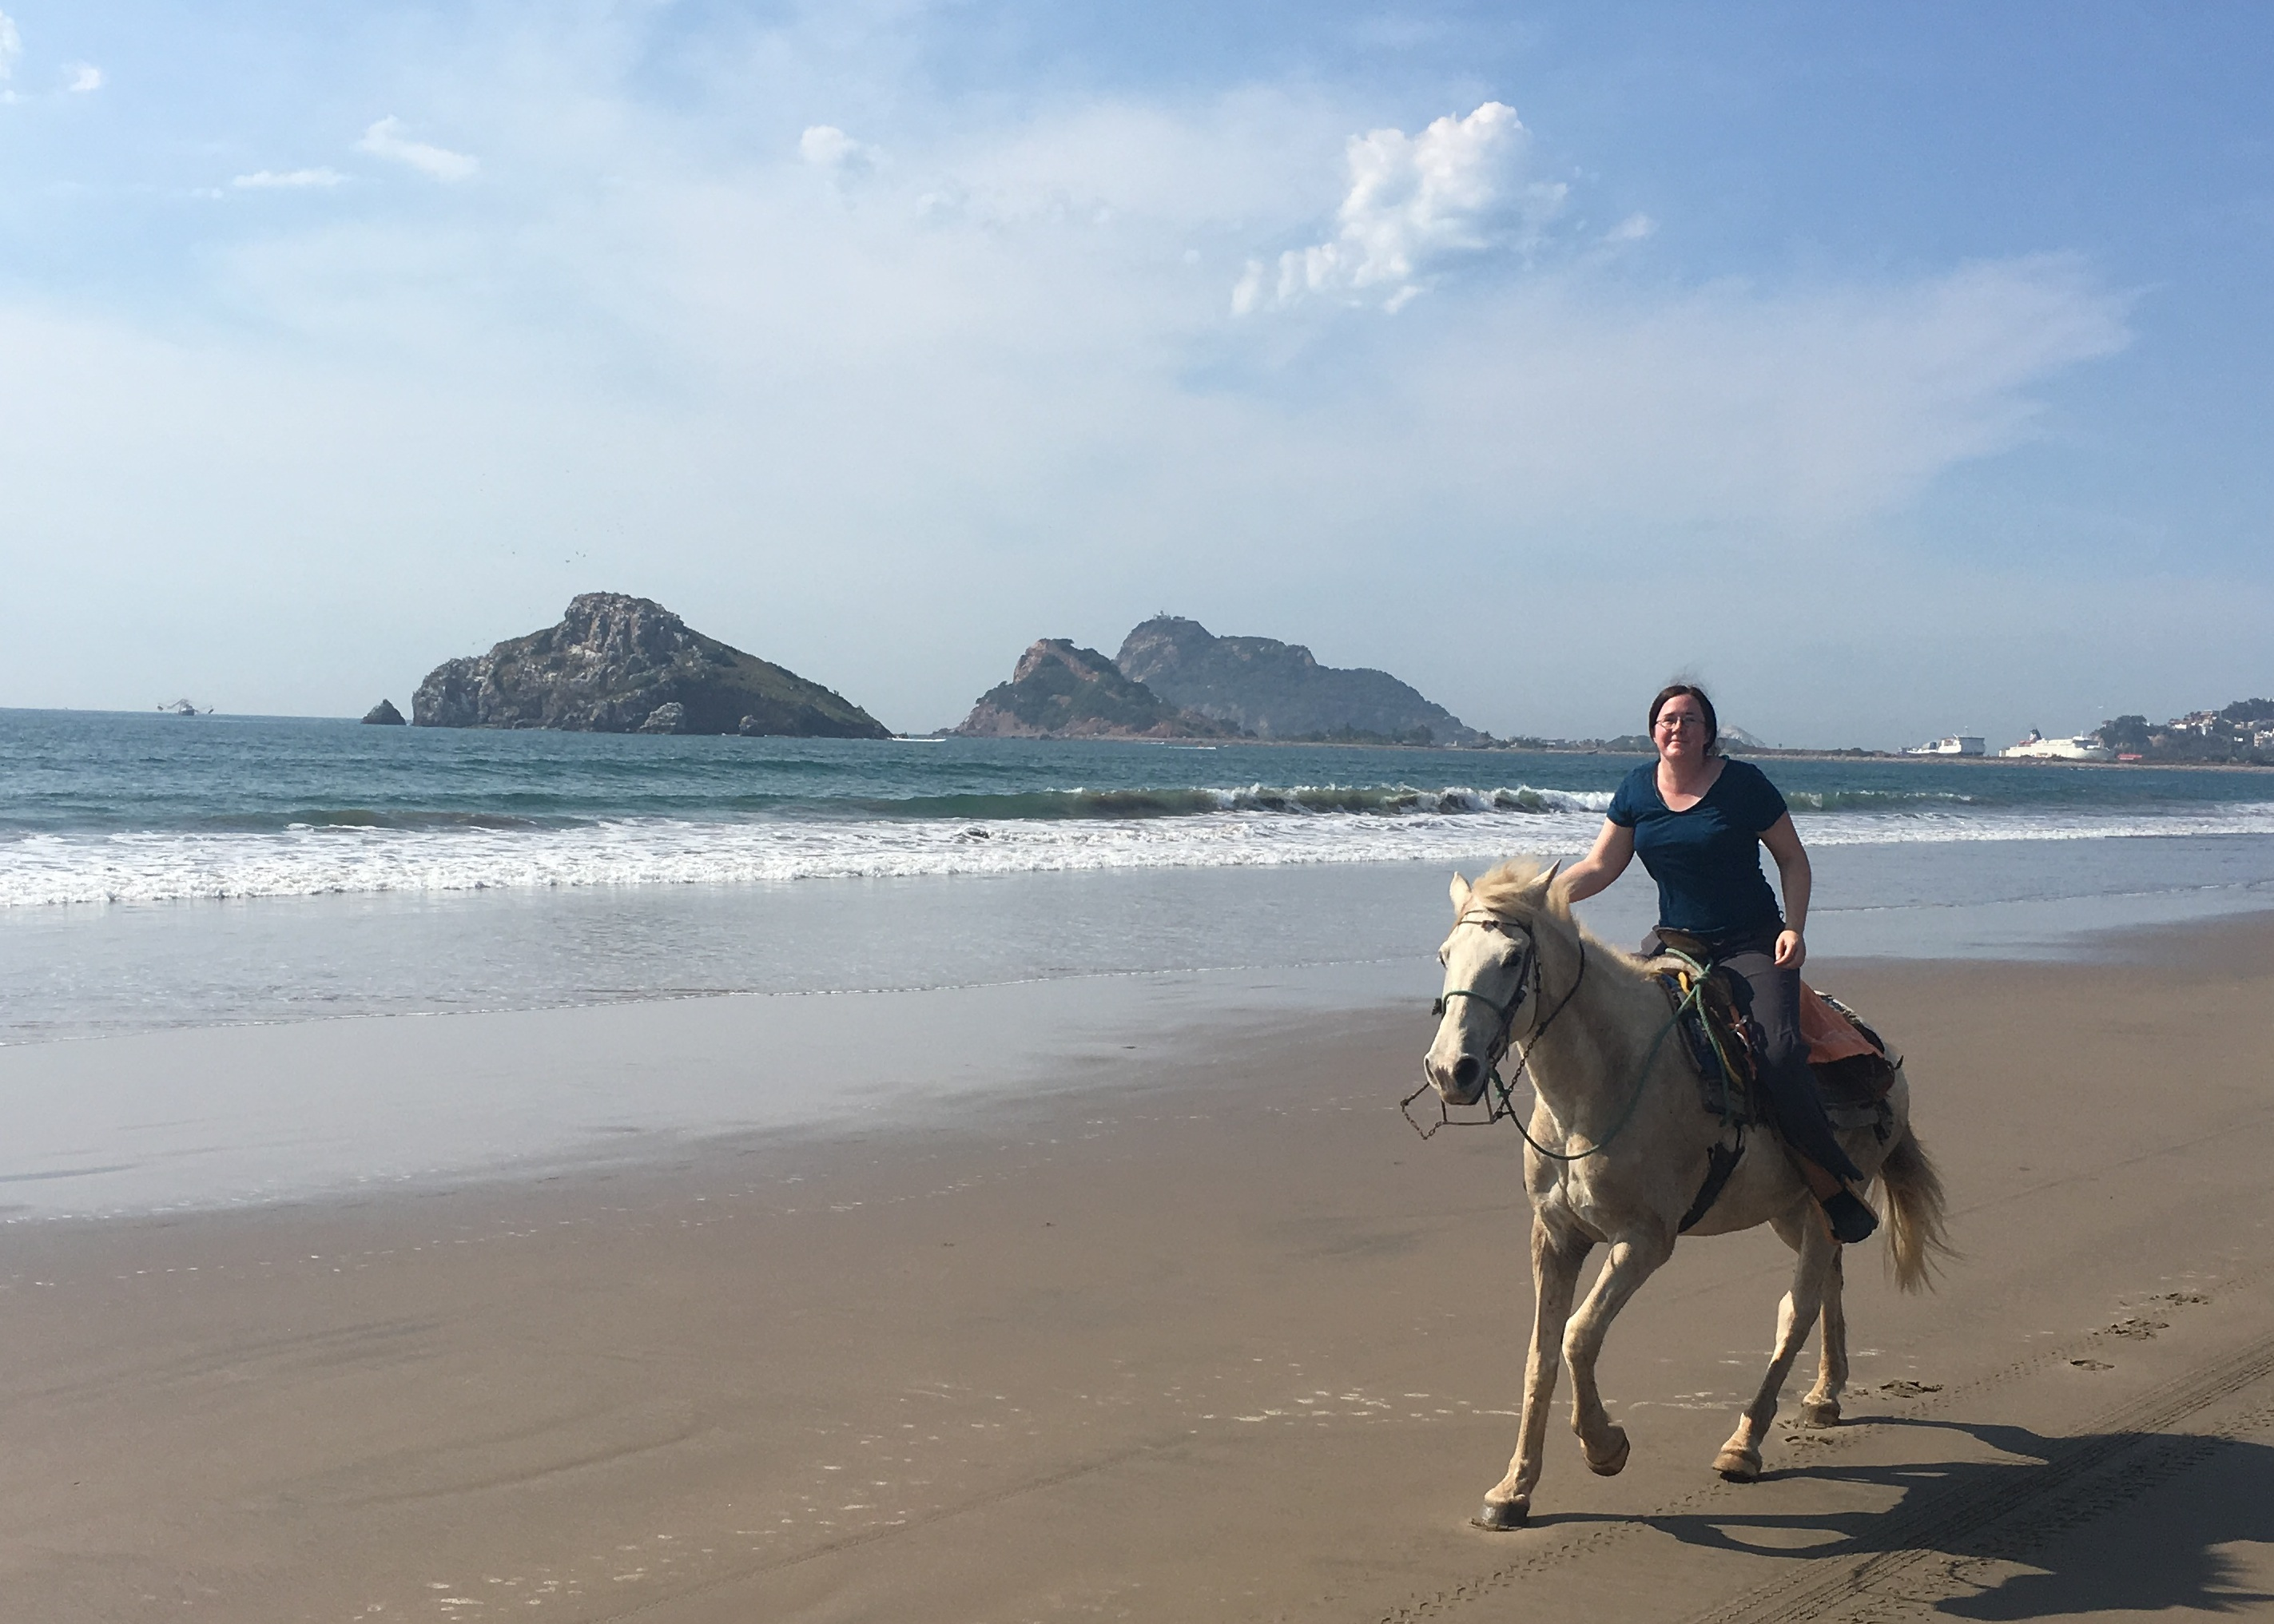 canter on beach